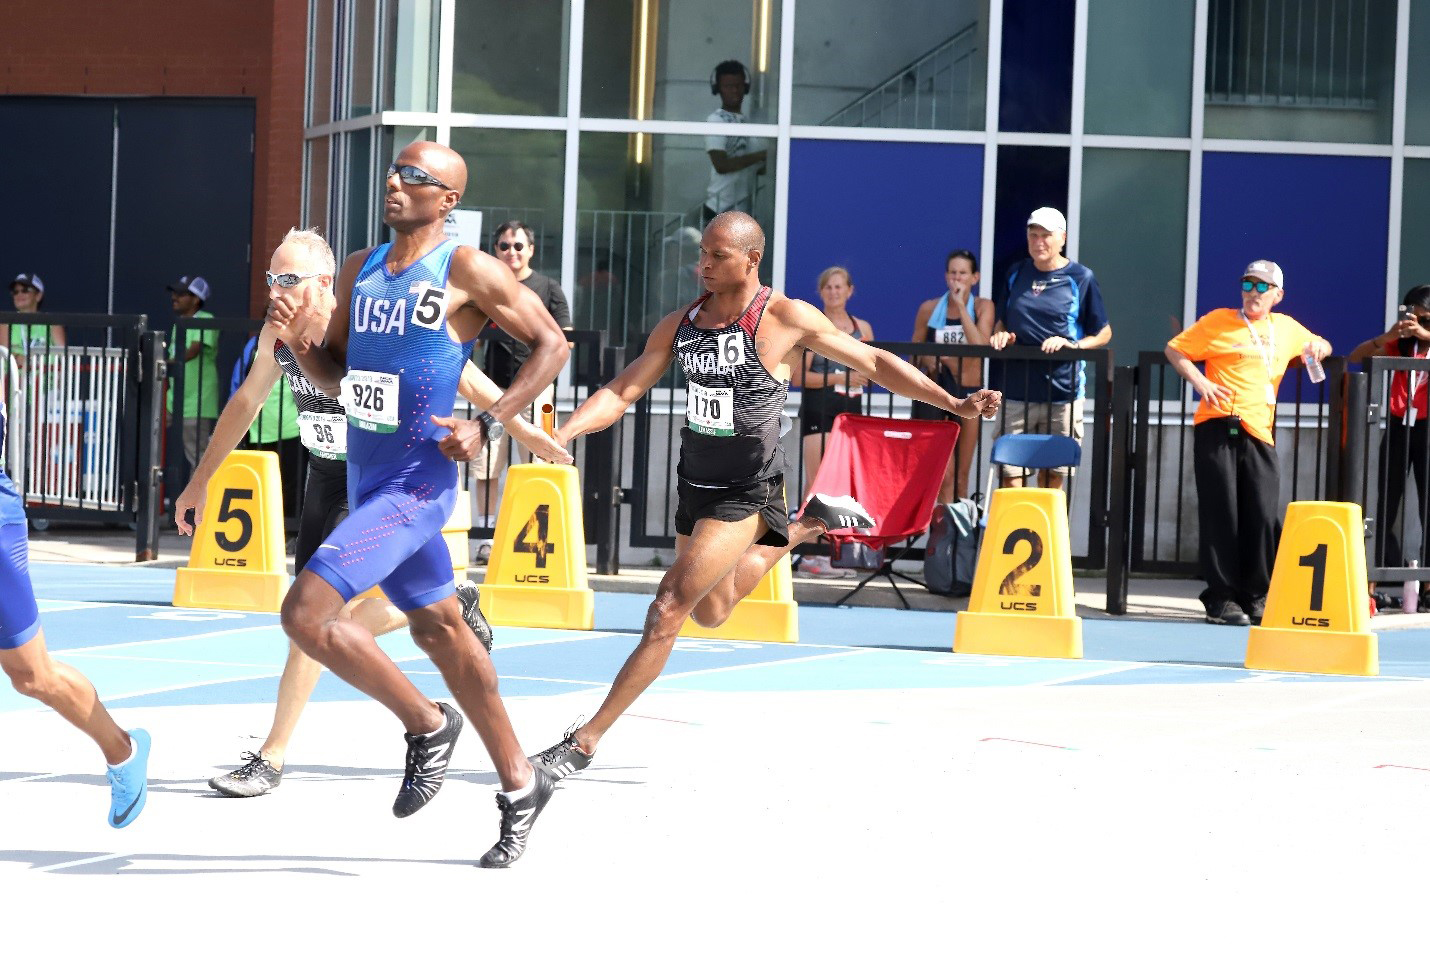 On their way to a second-place finish in the 4x100m relay (M55), Major Serge Faucher (second left, back) receives the baton from Christian Lemassif (centre) at the North, Central America and Caribbean Region of World Masters Athletics (NCCWMA) Championships in July 2019. Khalid Mulazim from the US, wearing bib 926, is the fastest M50 400m runner in the world. PHOTO: Submitted